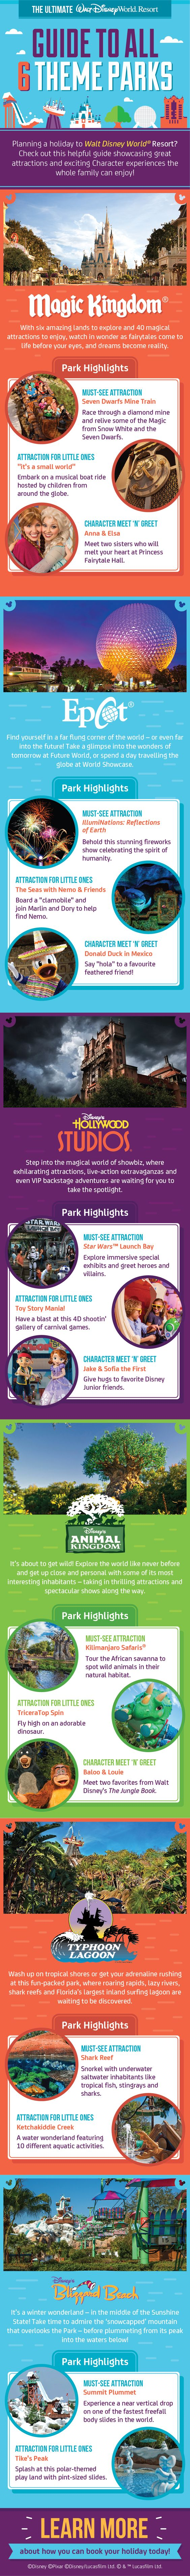 Planning a holiday to Walt Disney World Resort? Check out this helpful guide showcasing great attractions and exciting Character experiences the whole family can enjoy at our 4 Theme Parks & 2 Water Parks!